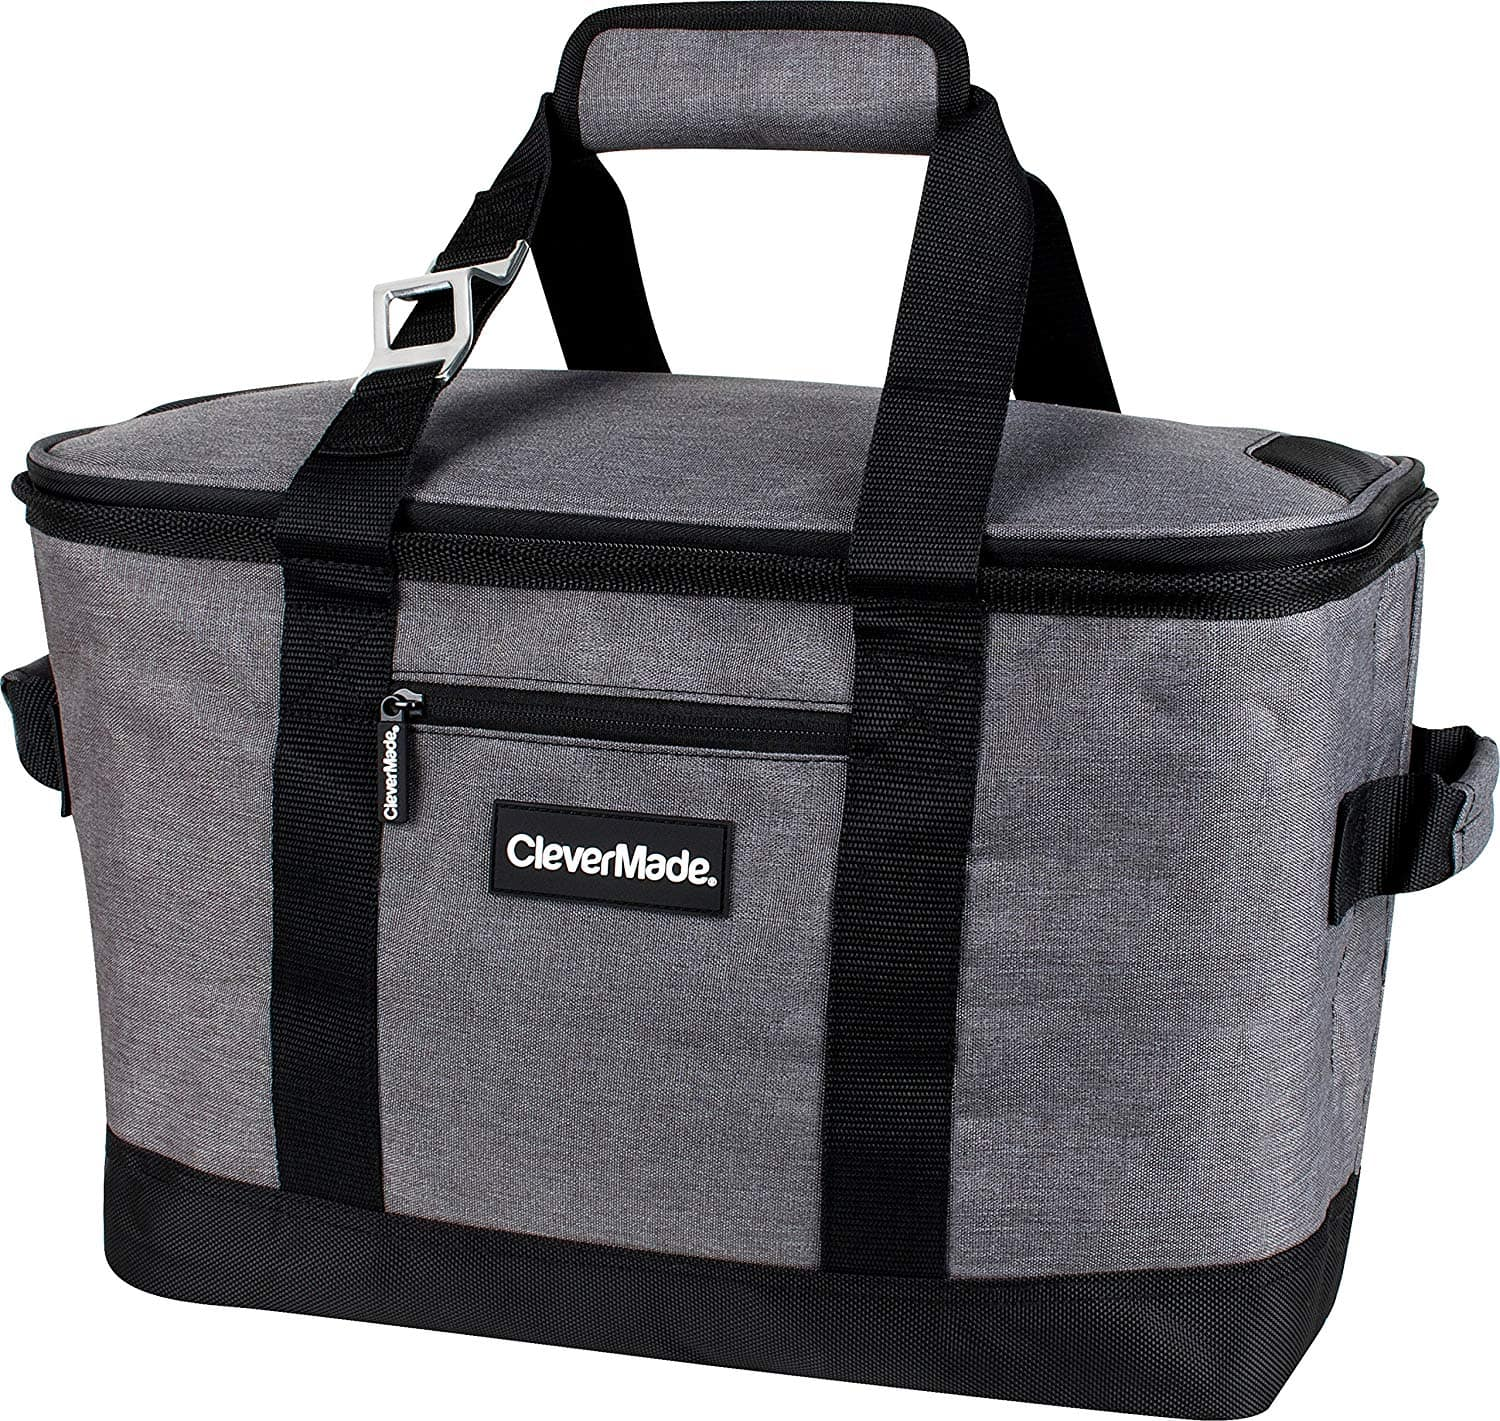 CleverMade SnapBasket 50 Can, Soft-Sided Collapsible Cooler/Black/Blue - $26.99 + F/S @Amazon